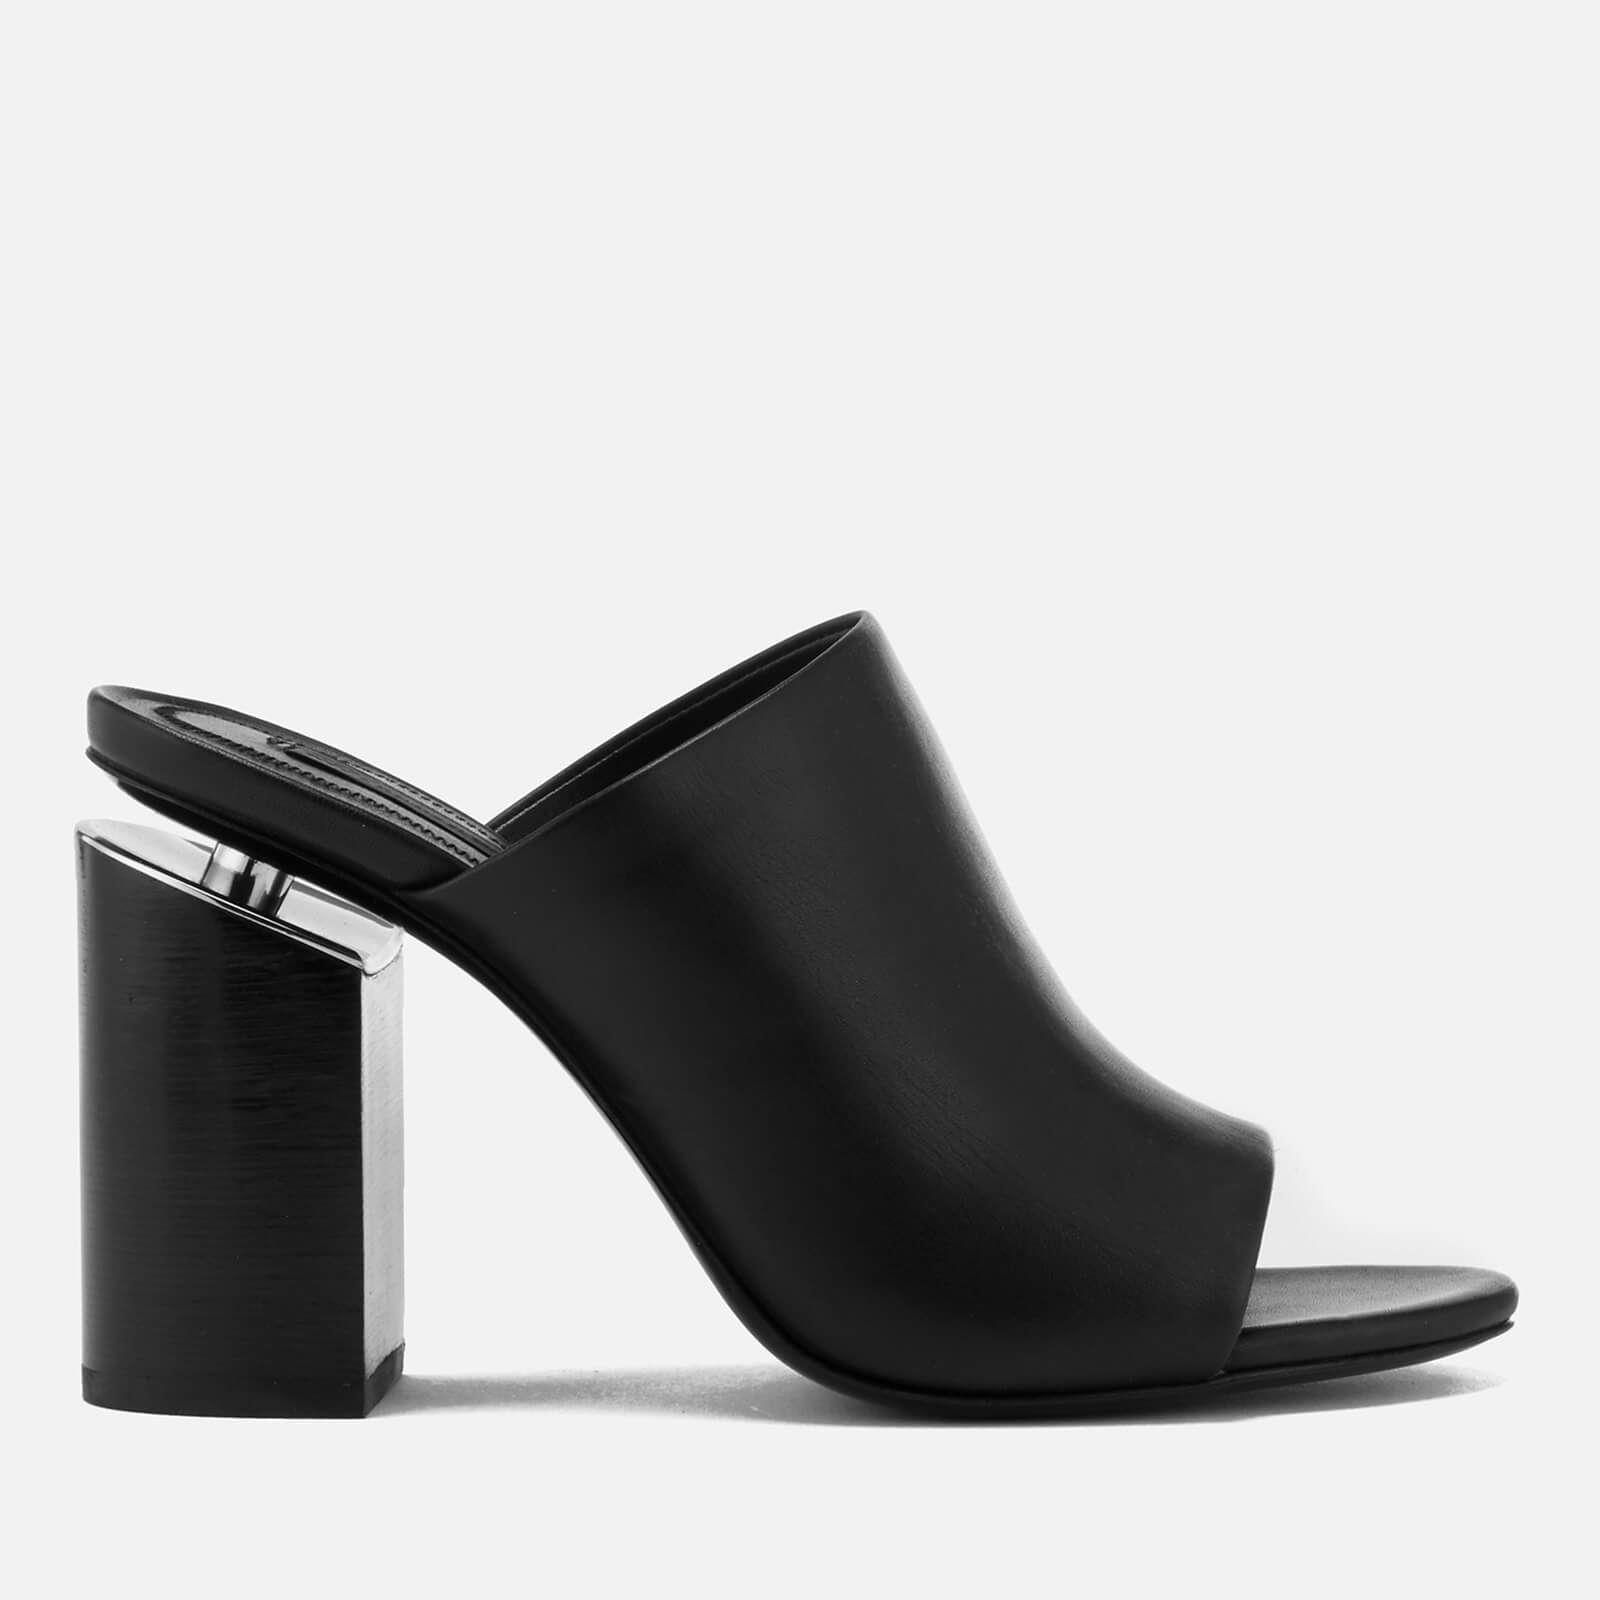 aca09d05db2a Alexander Wang Women s Avery Leather Heeled Mules - Black